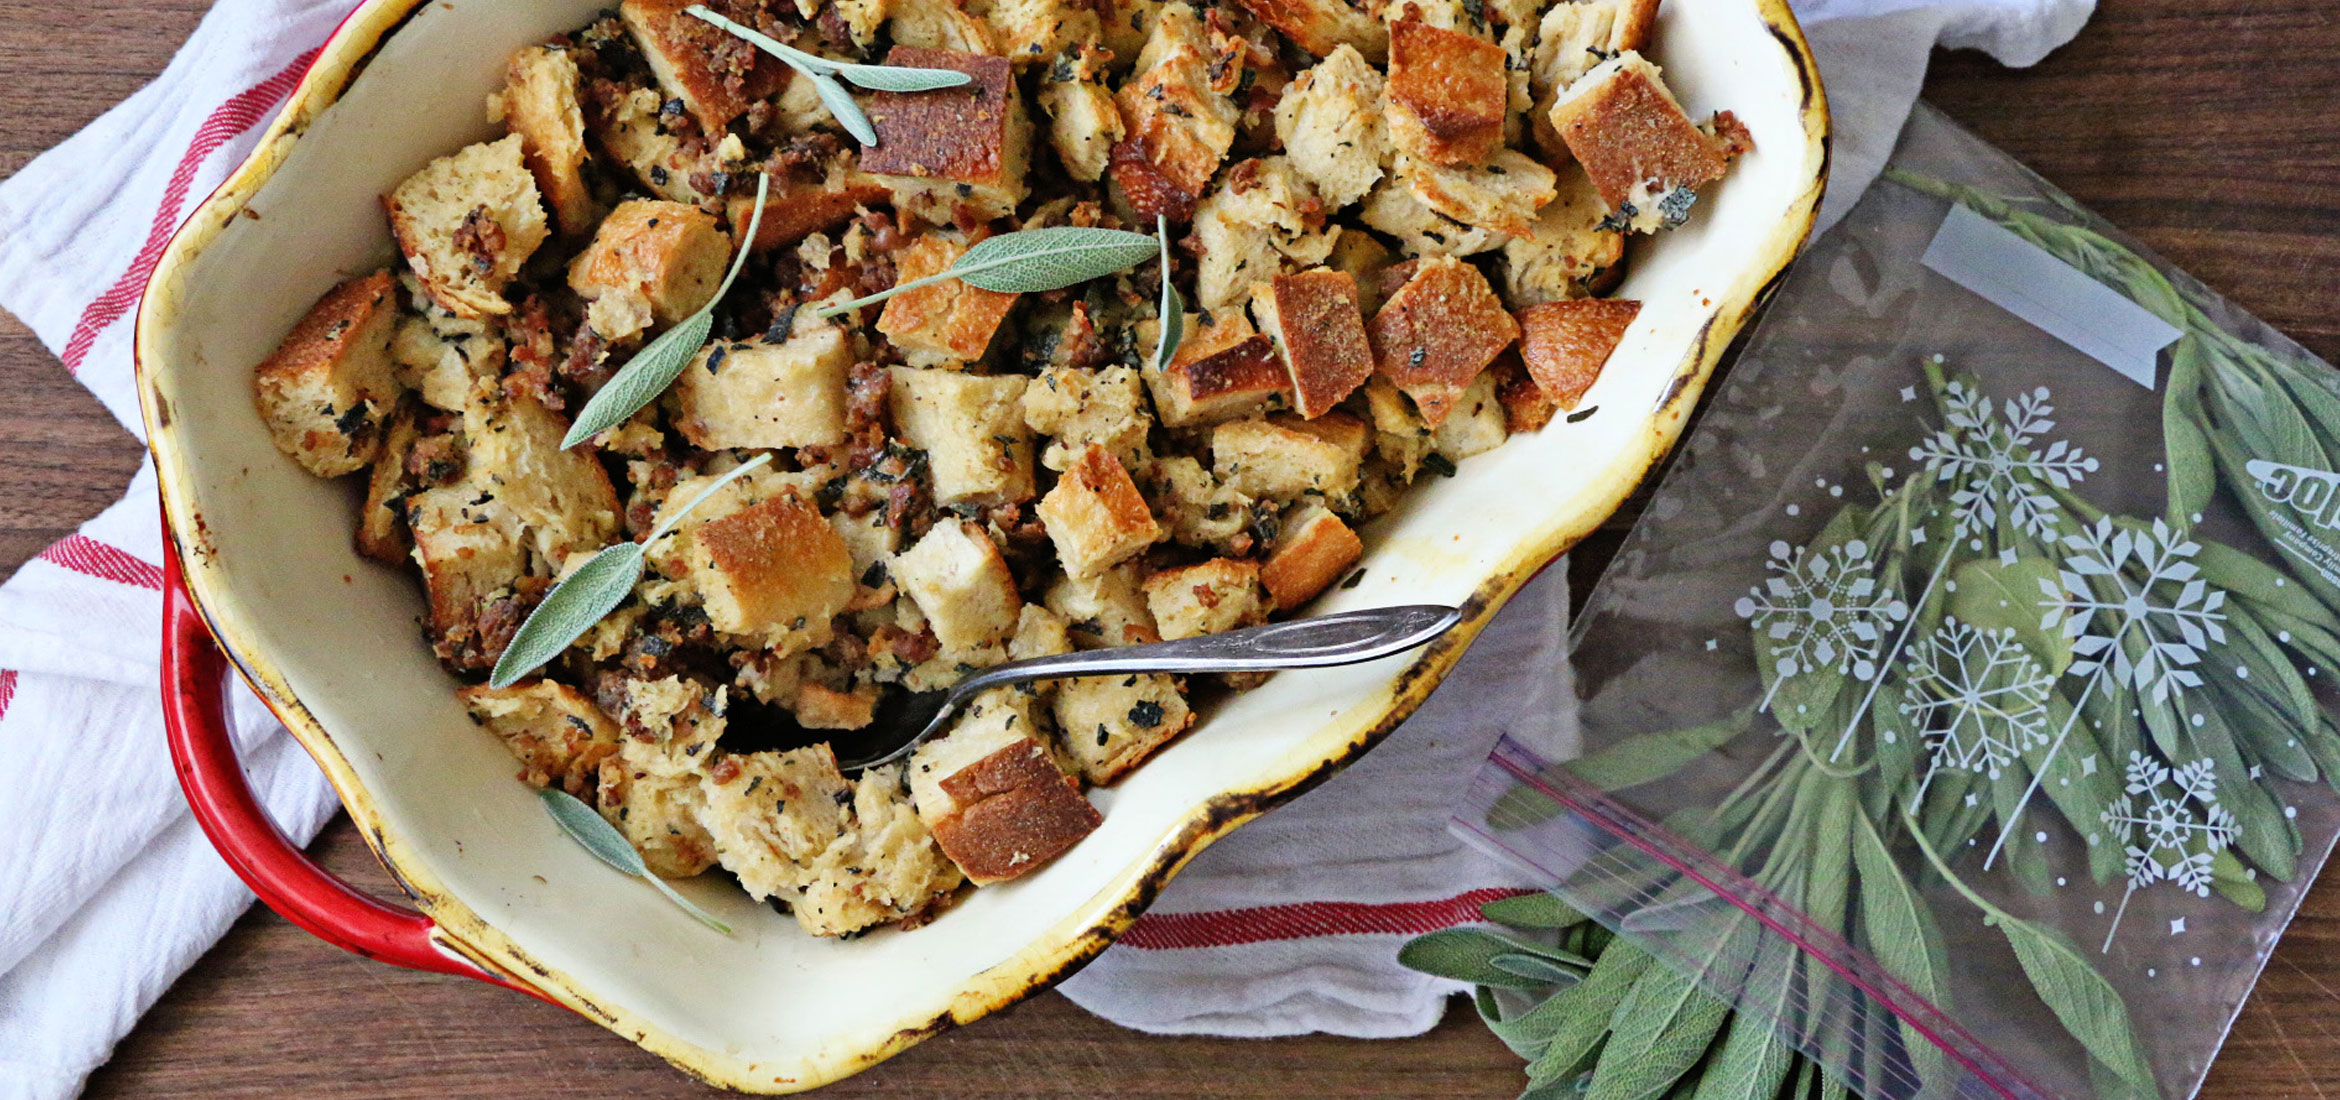 Home . Recipes . Snacks & Appetizers . Sourdough And Sausage Stuffing